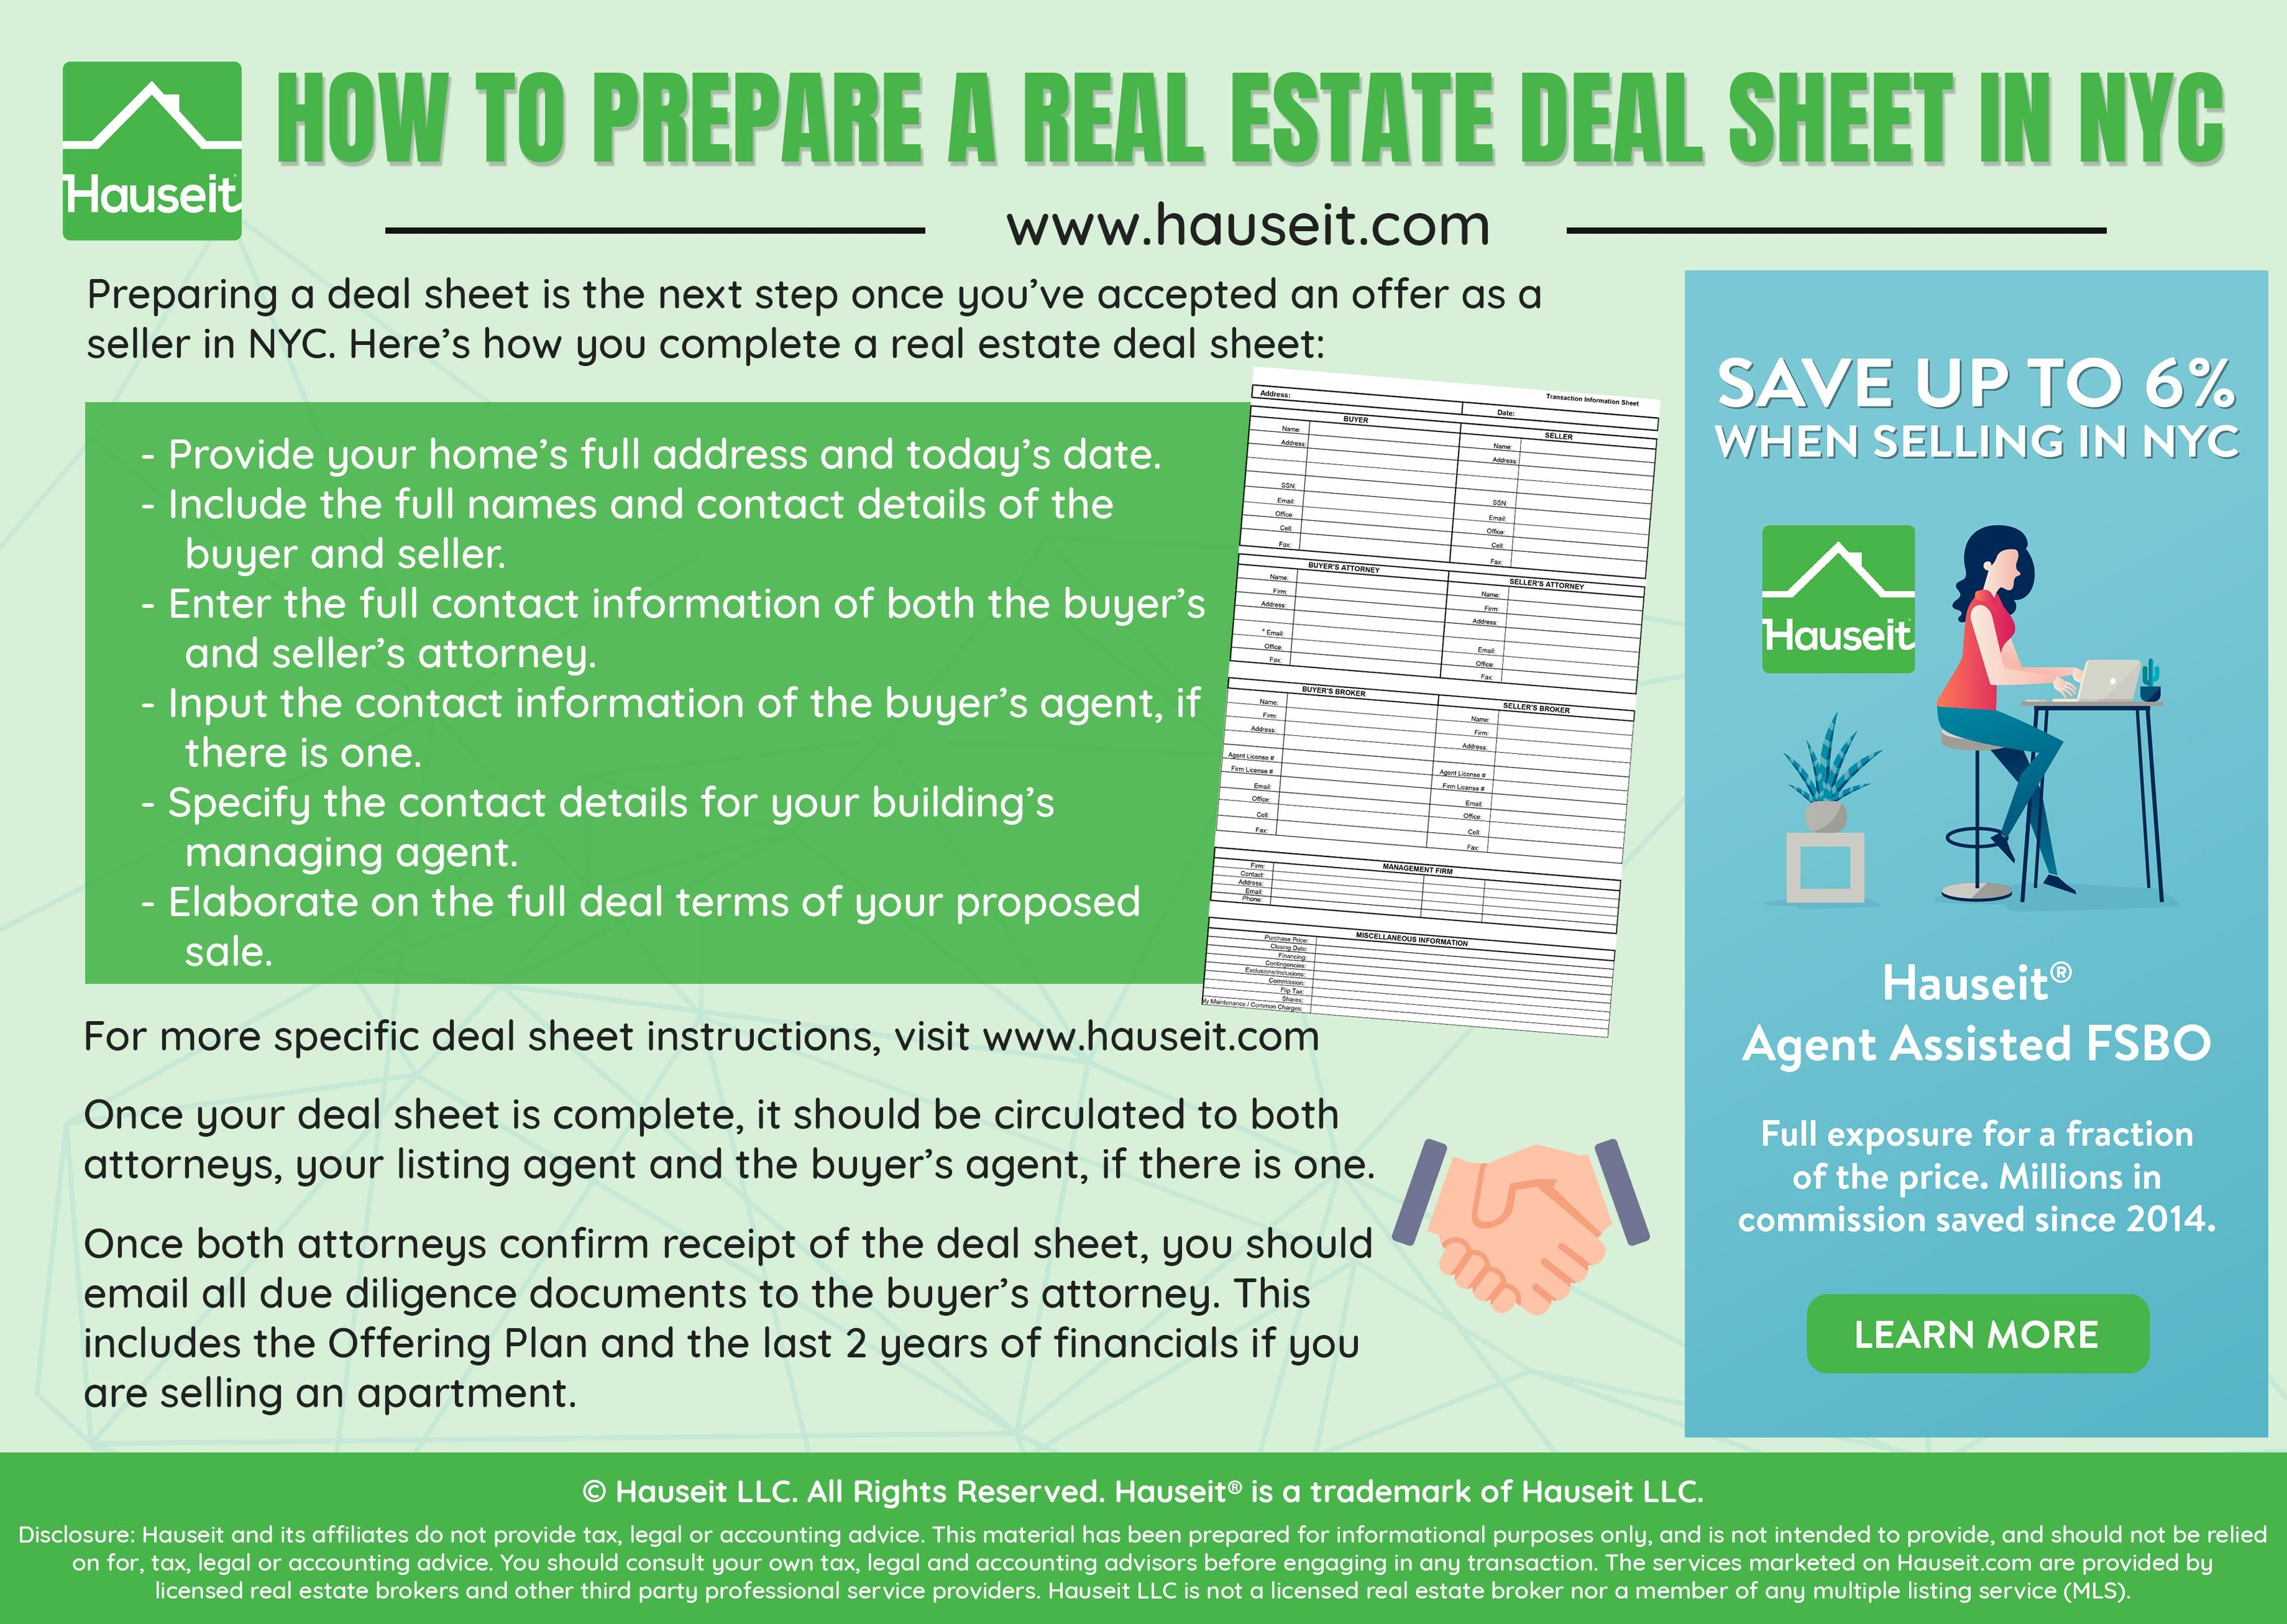 A Real Estate Deal Sheet Is Typically Prepared And Circulated Once